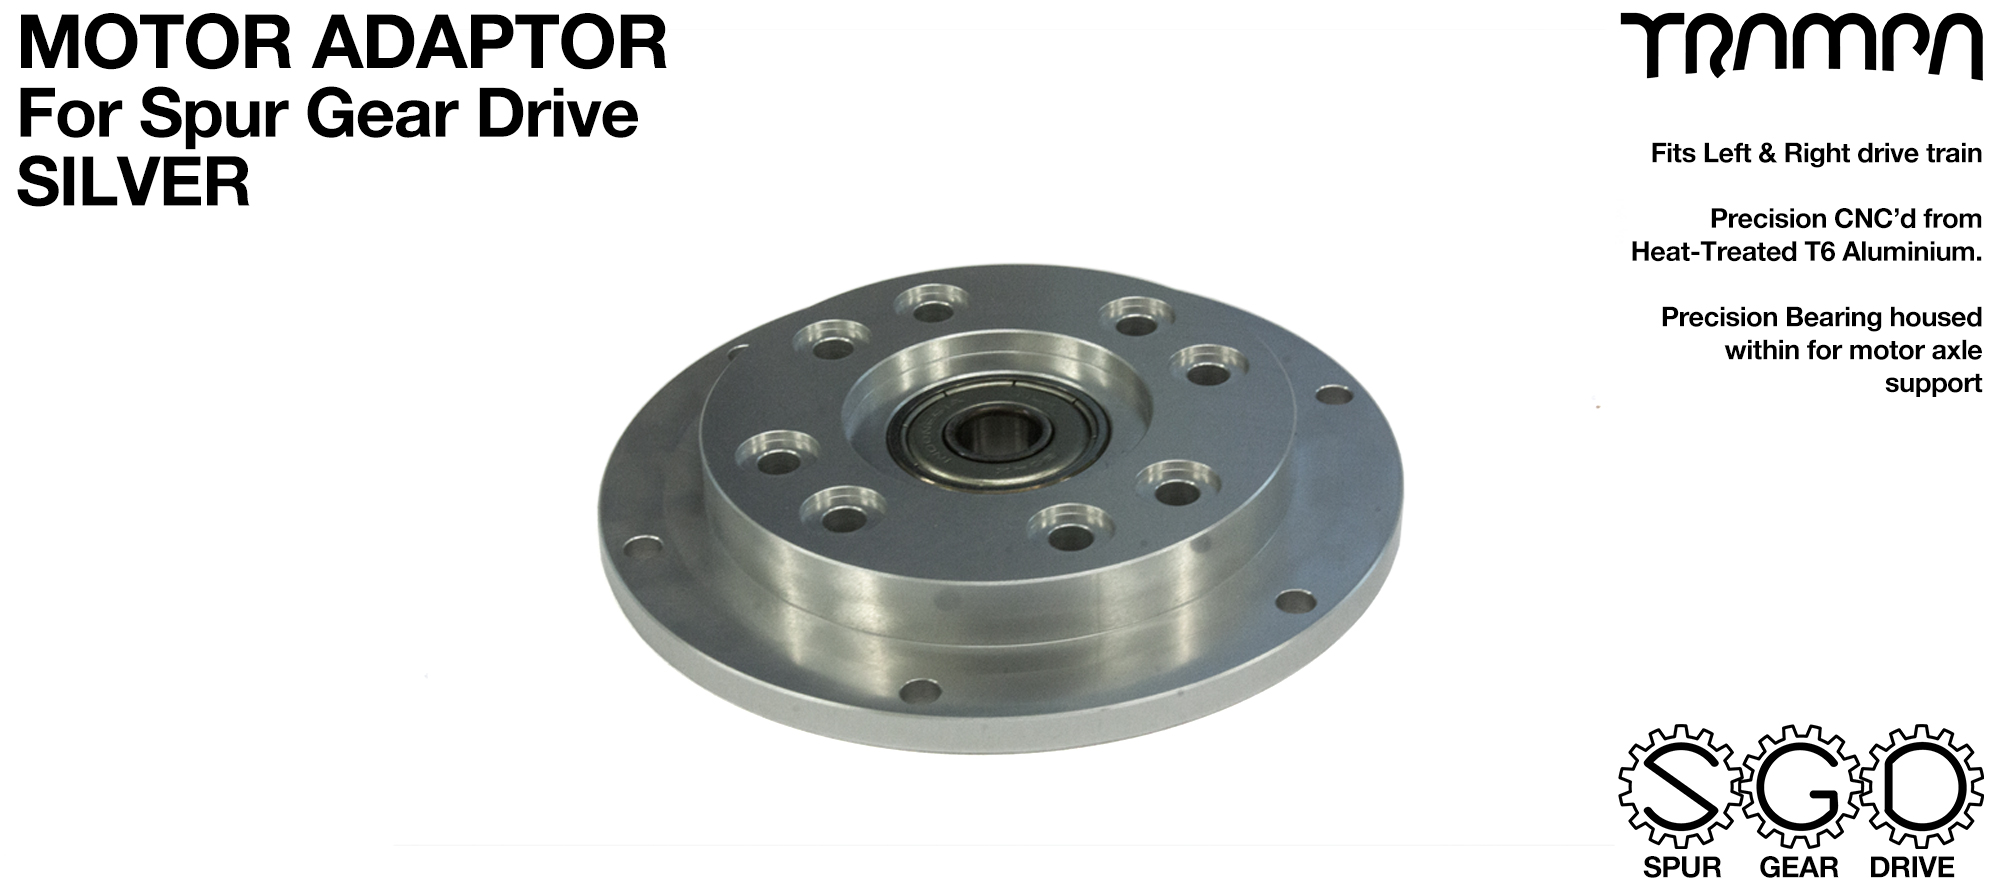 SILVER Motor Adapter plate